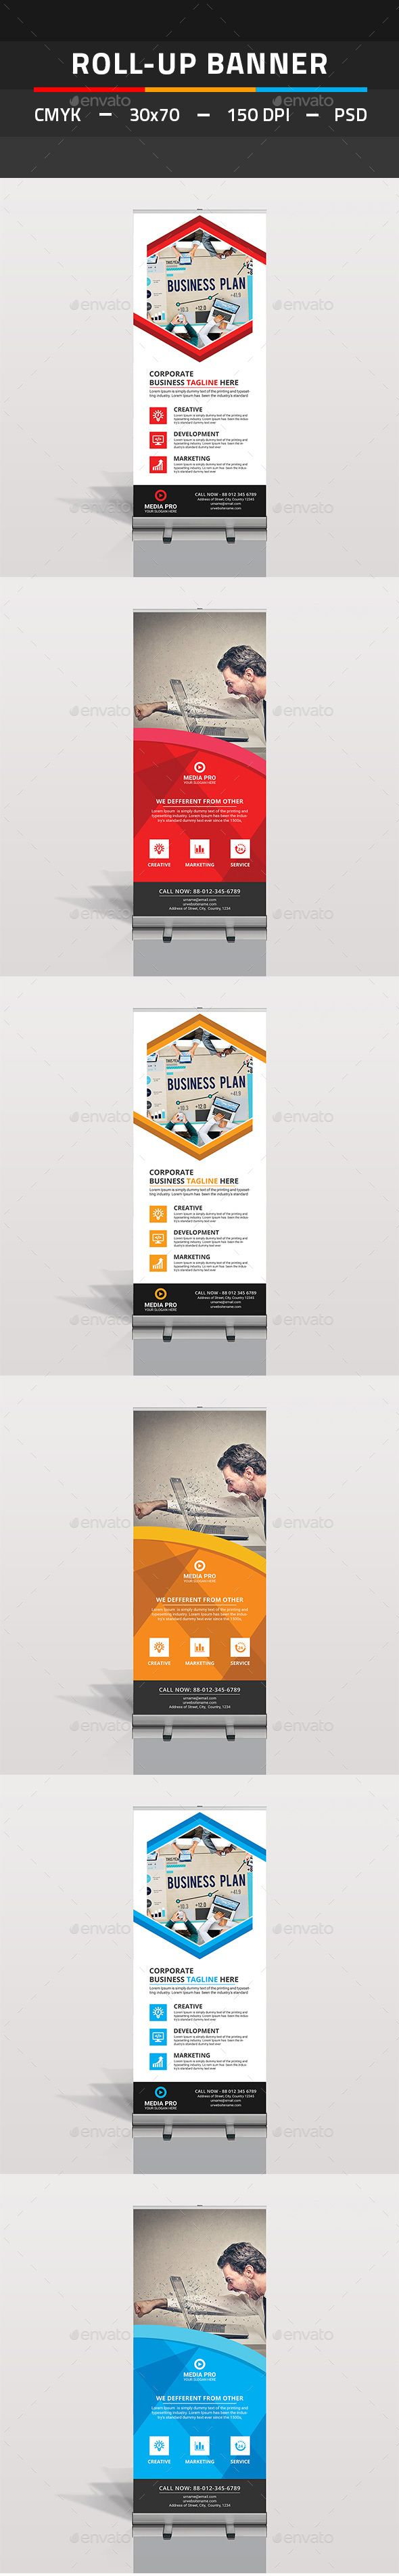 Roll Up Banner Bundle by tauhid1989 This is a Corporate Roll Up Banner Template Bundle. This template download contains 150 DPI, Print-Ready, CMYK, Layerd PSD files.